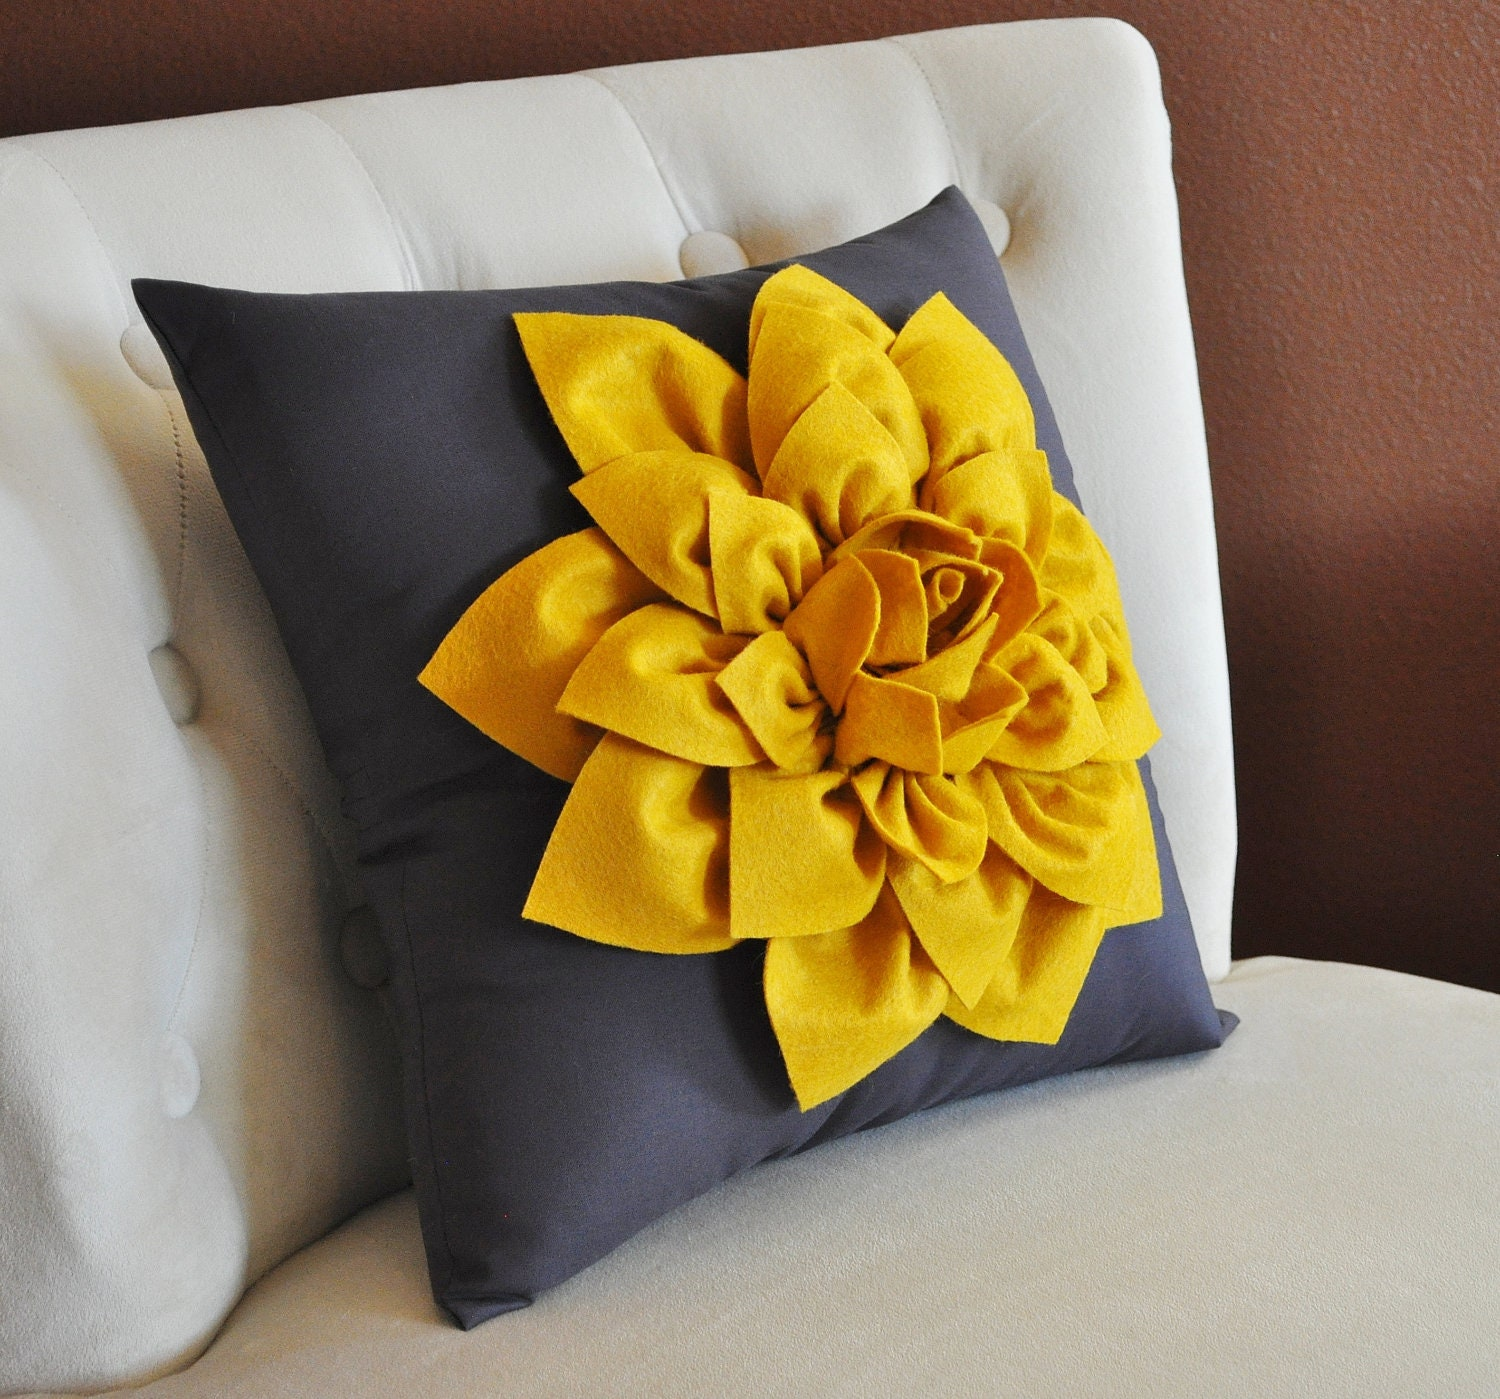 Decorative Flower Pillow Mustard Yellow Dahlia on by bedbuggs